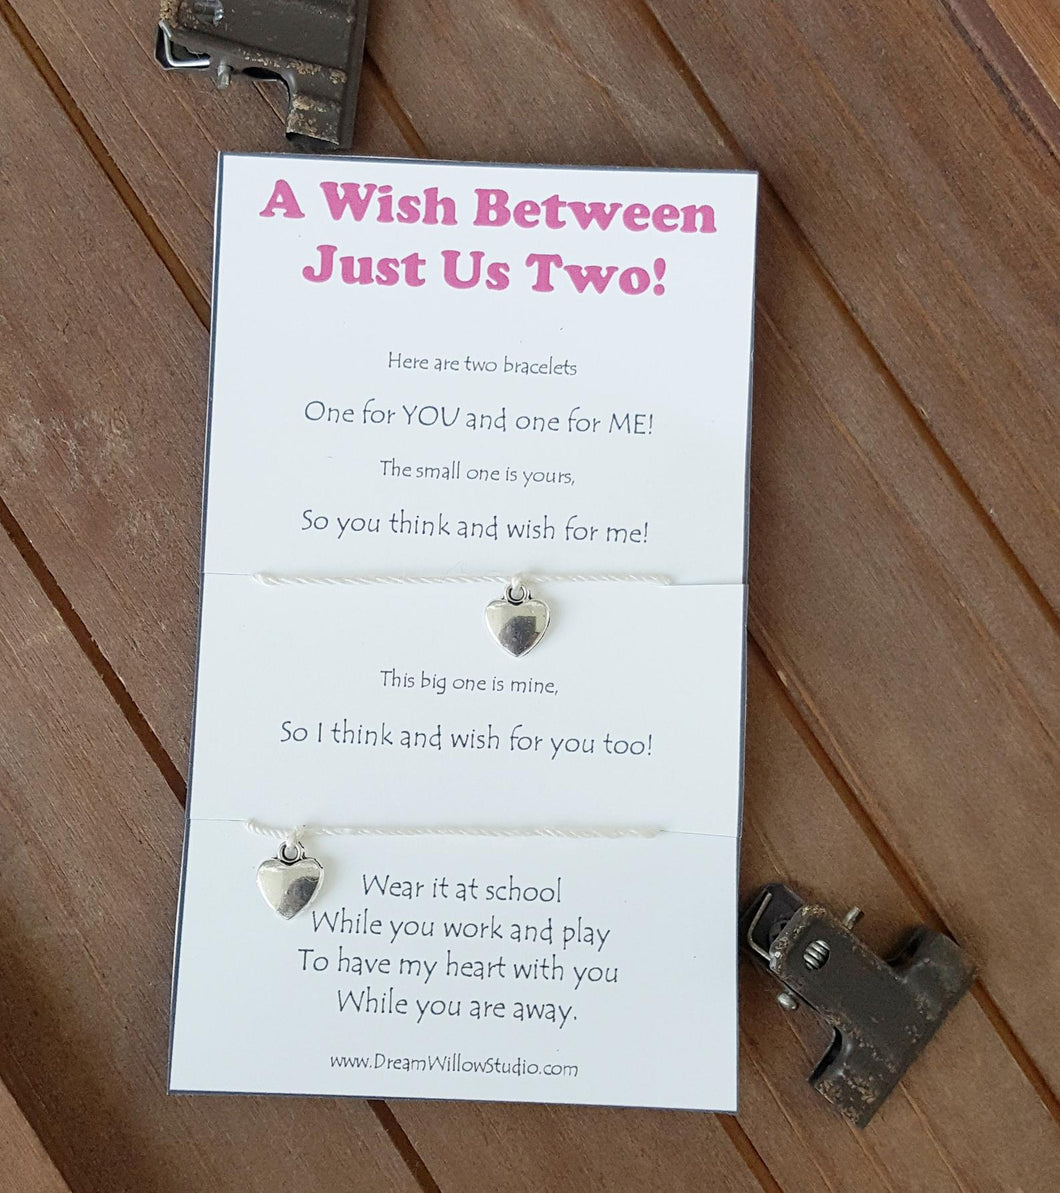 Just Us Two - Double Wish Bracelet